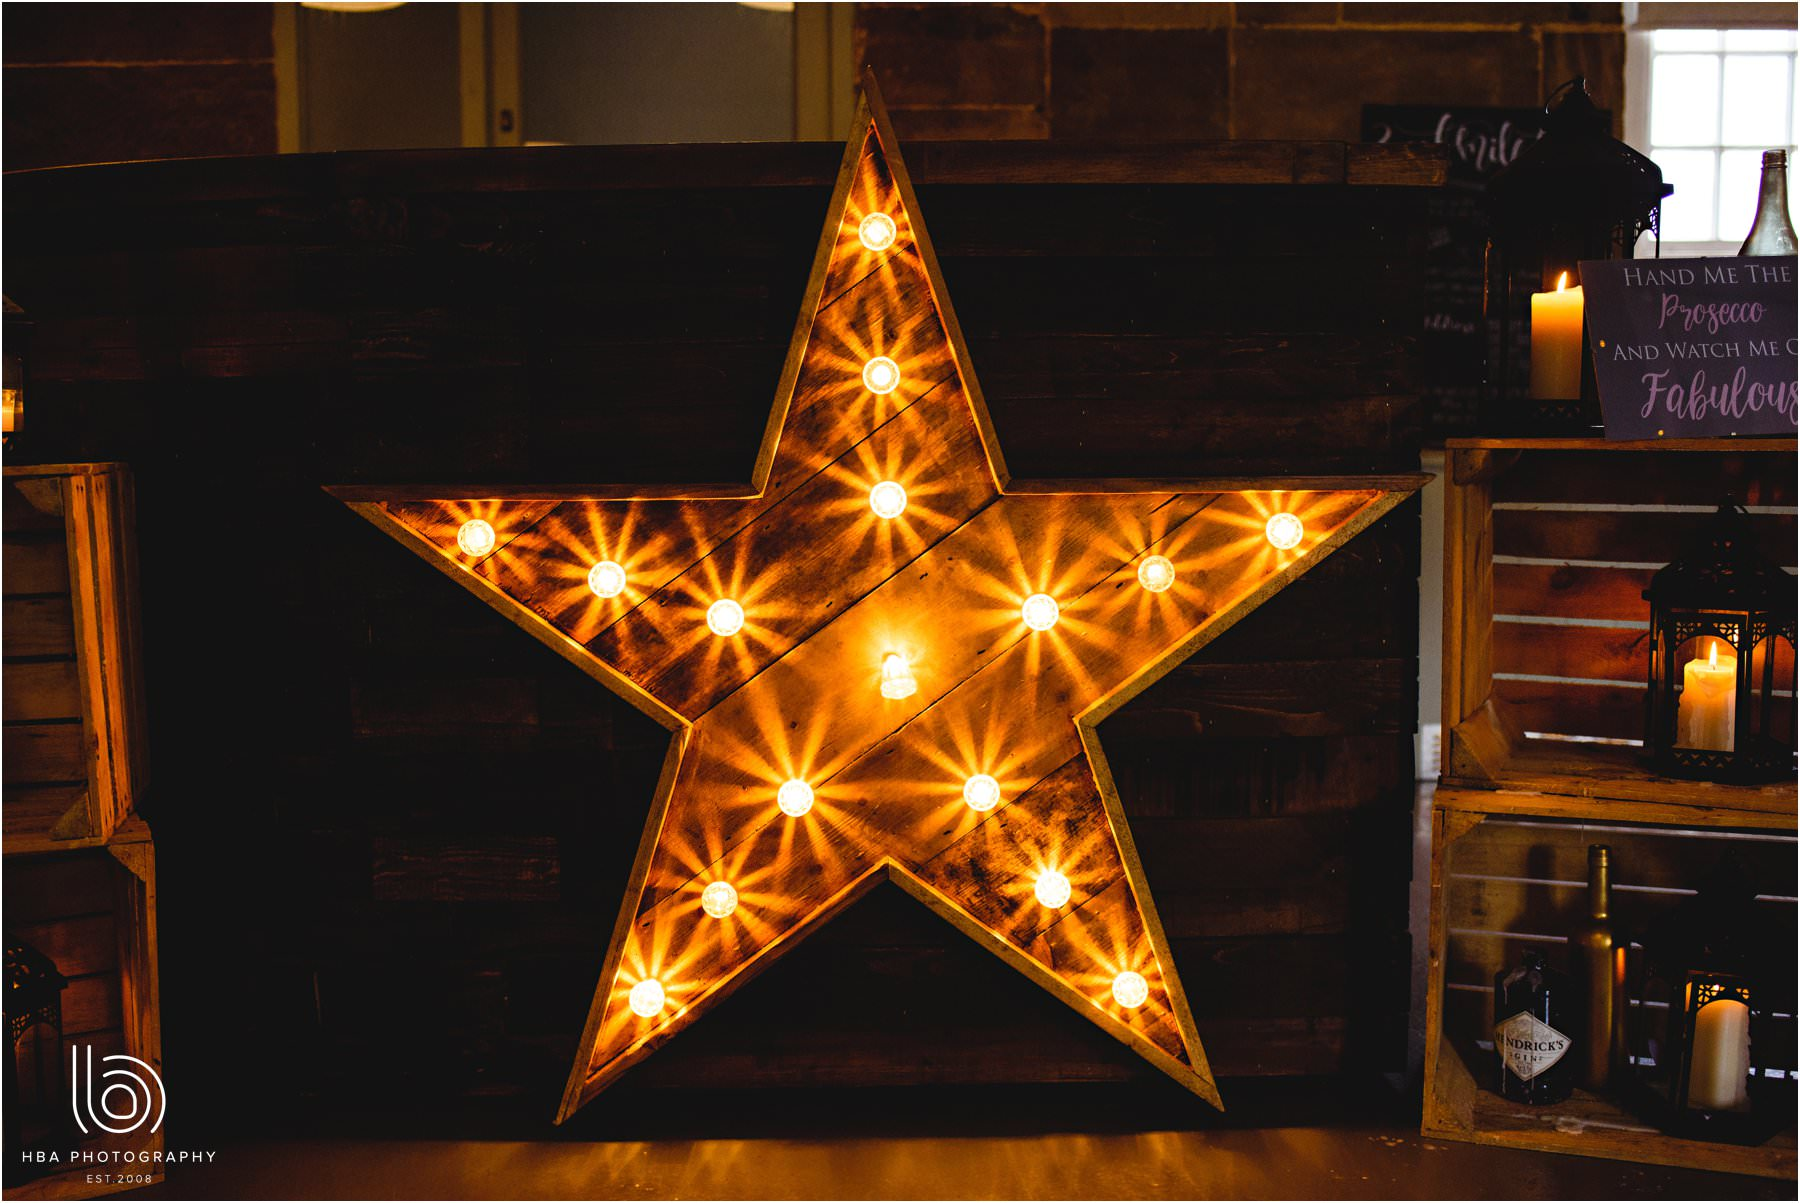 the illuminated star in the West Mill